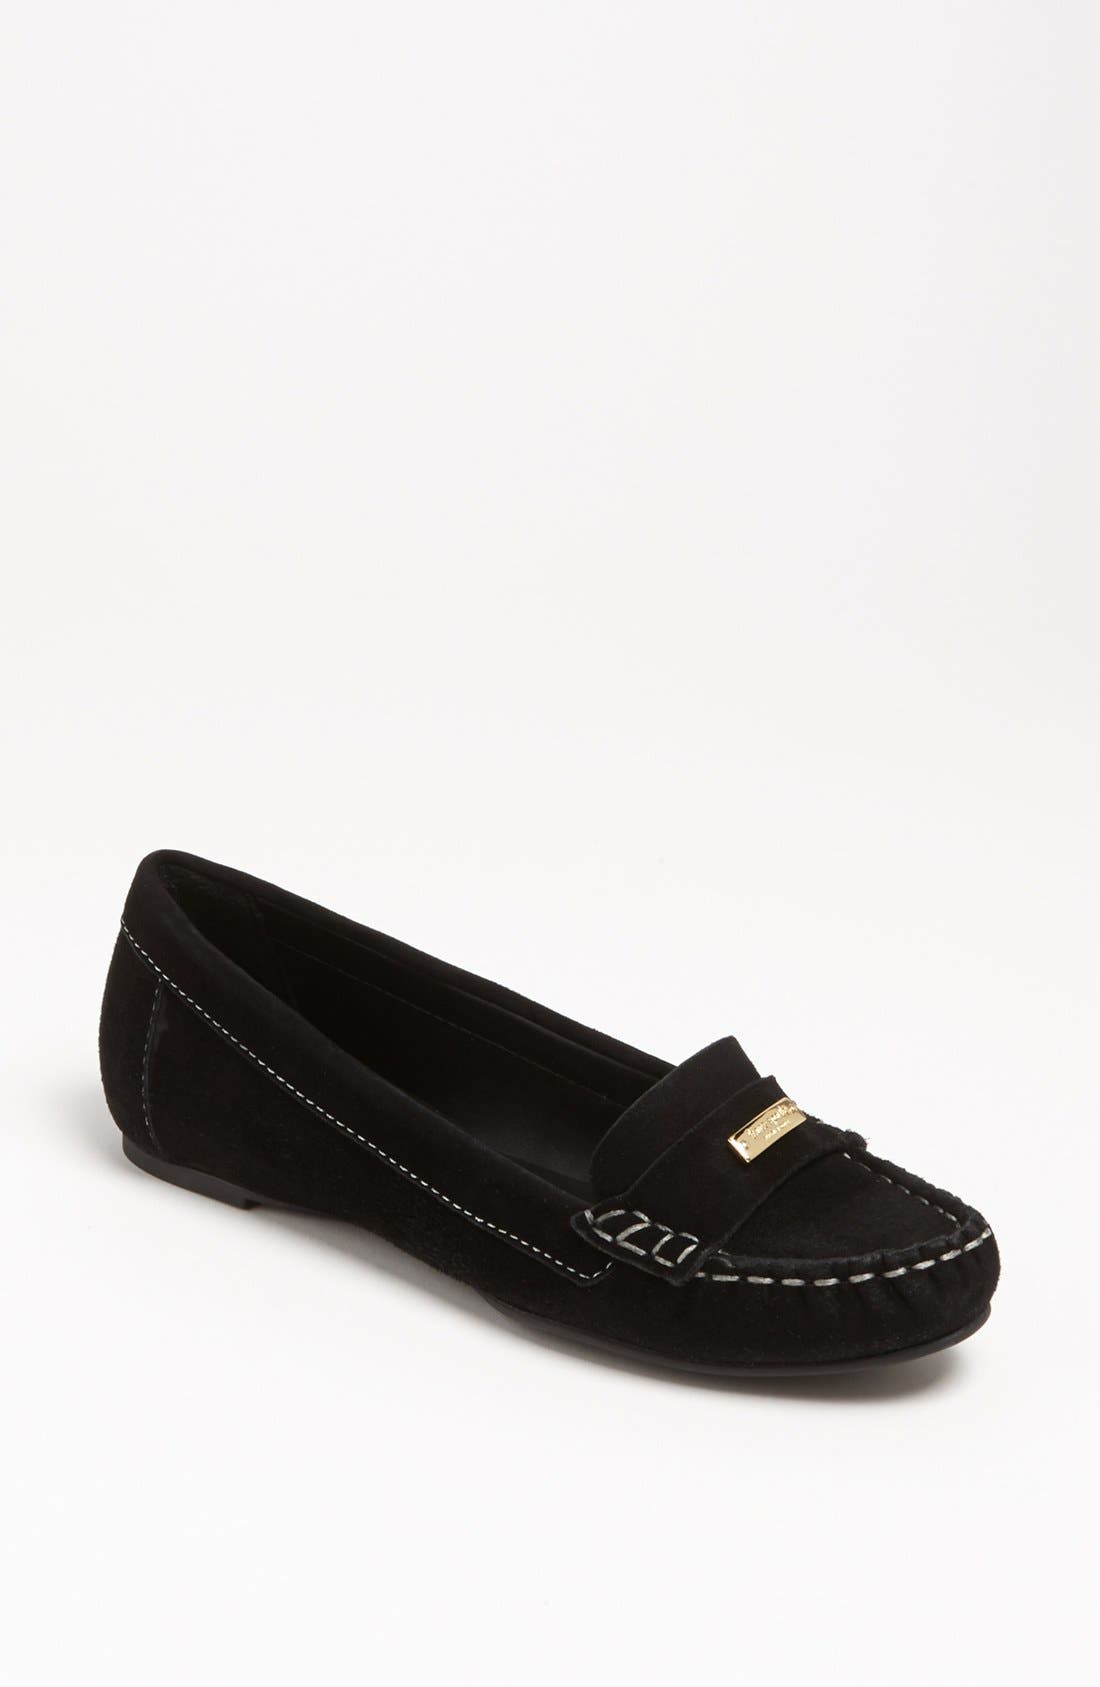 Alternate Image 1 Selected - kate spade new york 'wilamina' loafer